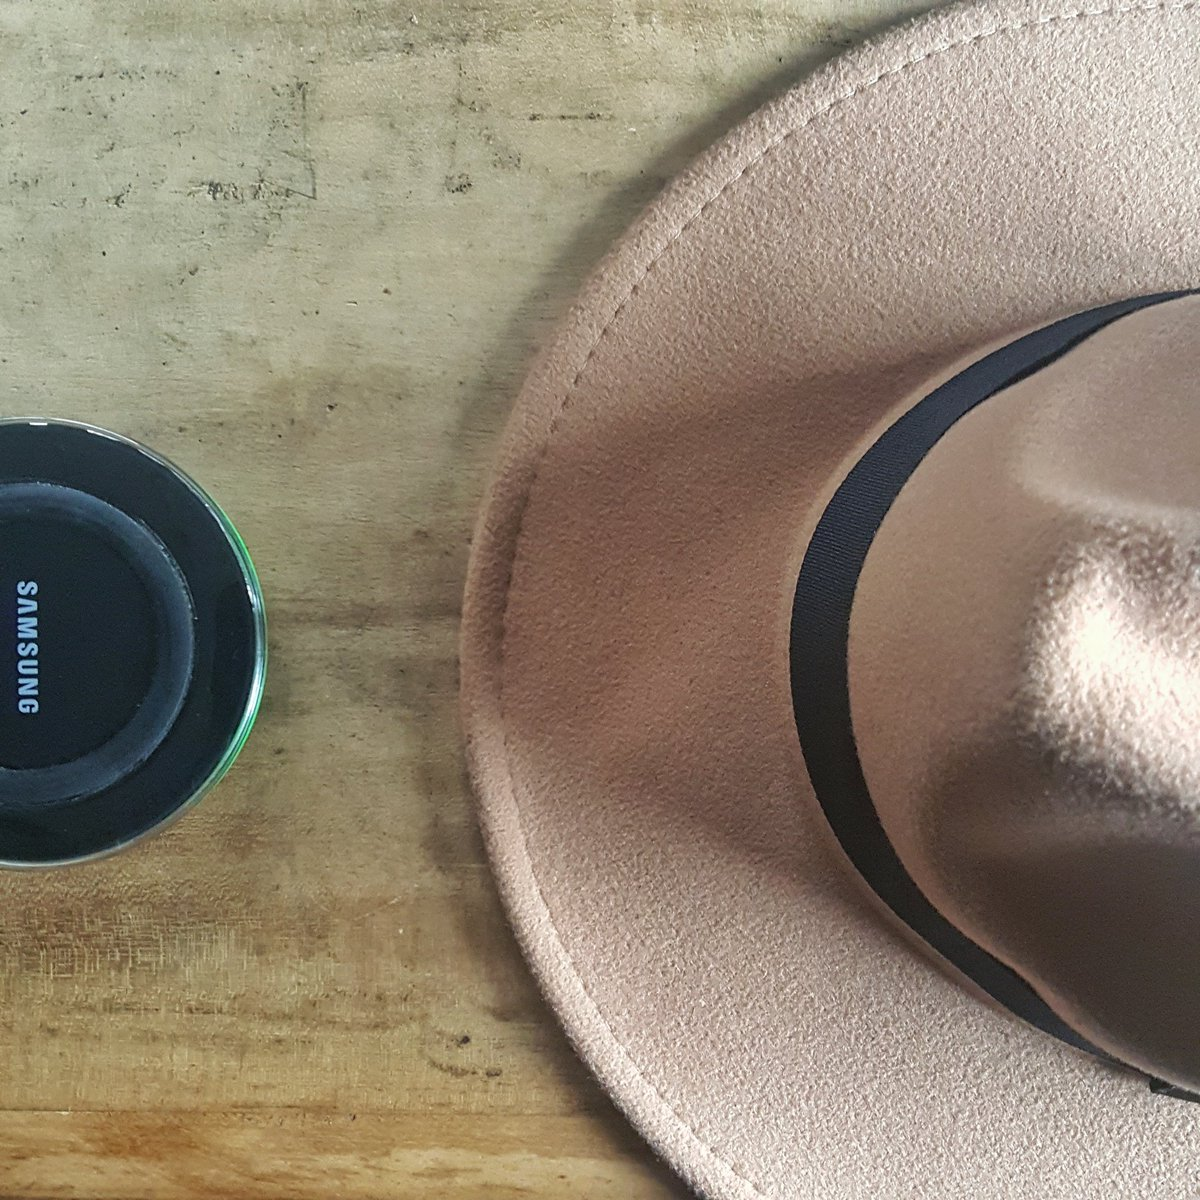 No Strings Attached. live #WIRELESSLY.  @samsungmobileng #WirelessCharger.  usage review | coming soon  #techblogger #blogger #mobile<br>http://pic.twitter.com/6RINsdpQhJ